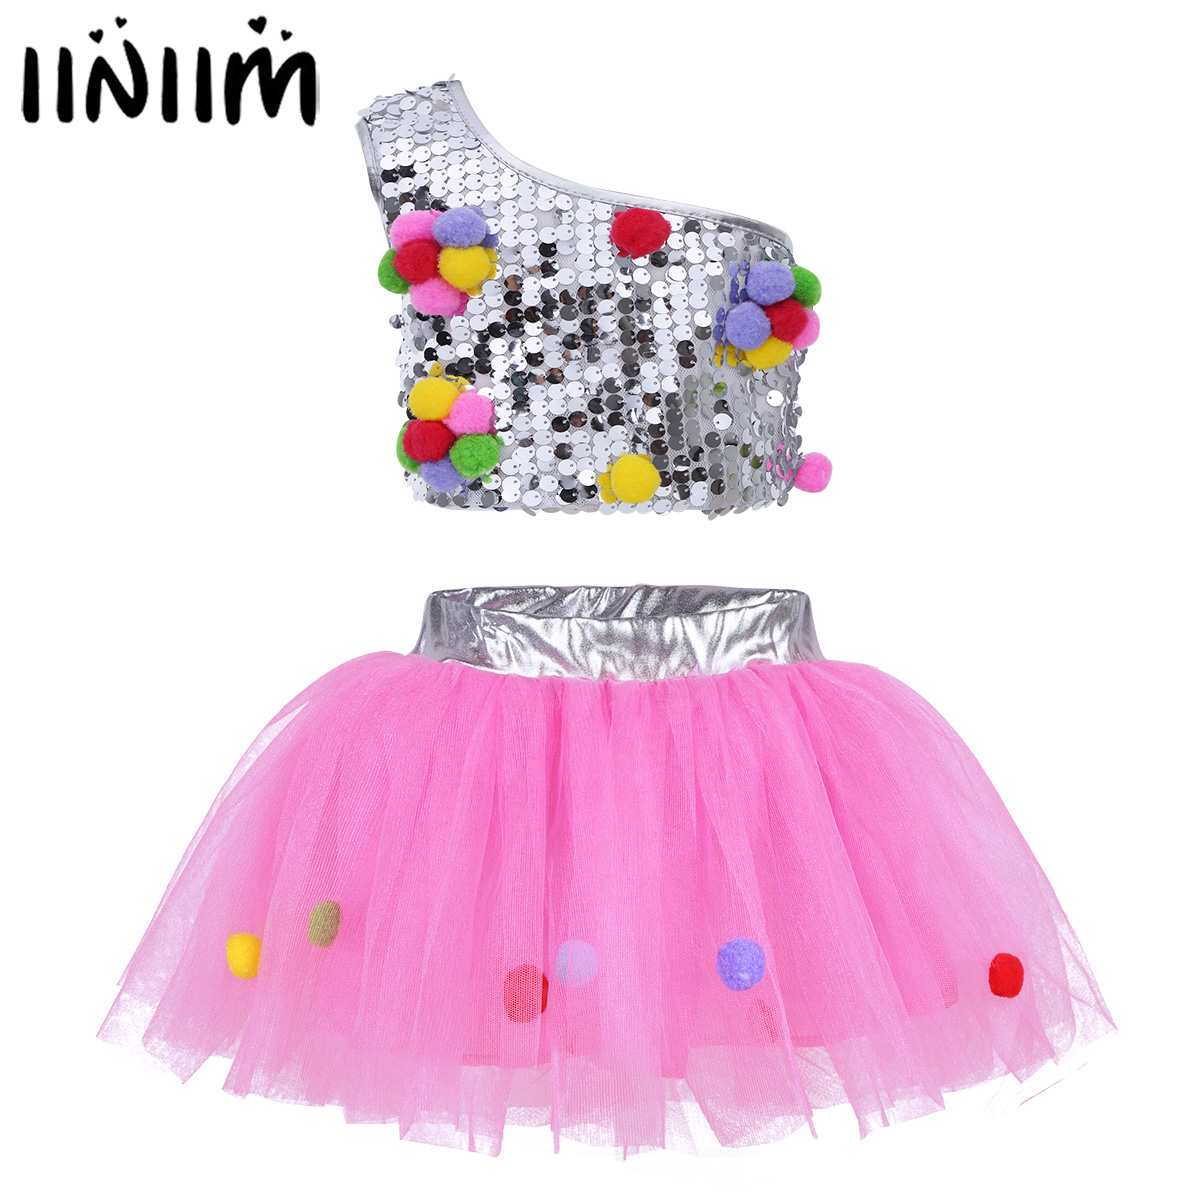 iiniim Teen Girls Gymnastics Leotard One-Shoulder Sequins Top with Tutu Skirt Hair Clip for Jazz Ballet Ballroom Dance Costumes